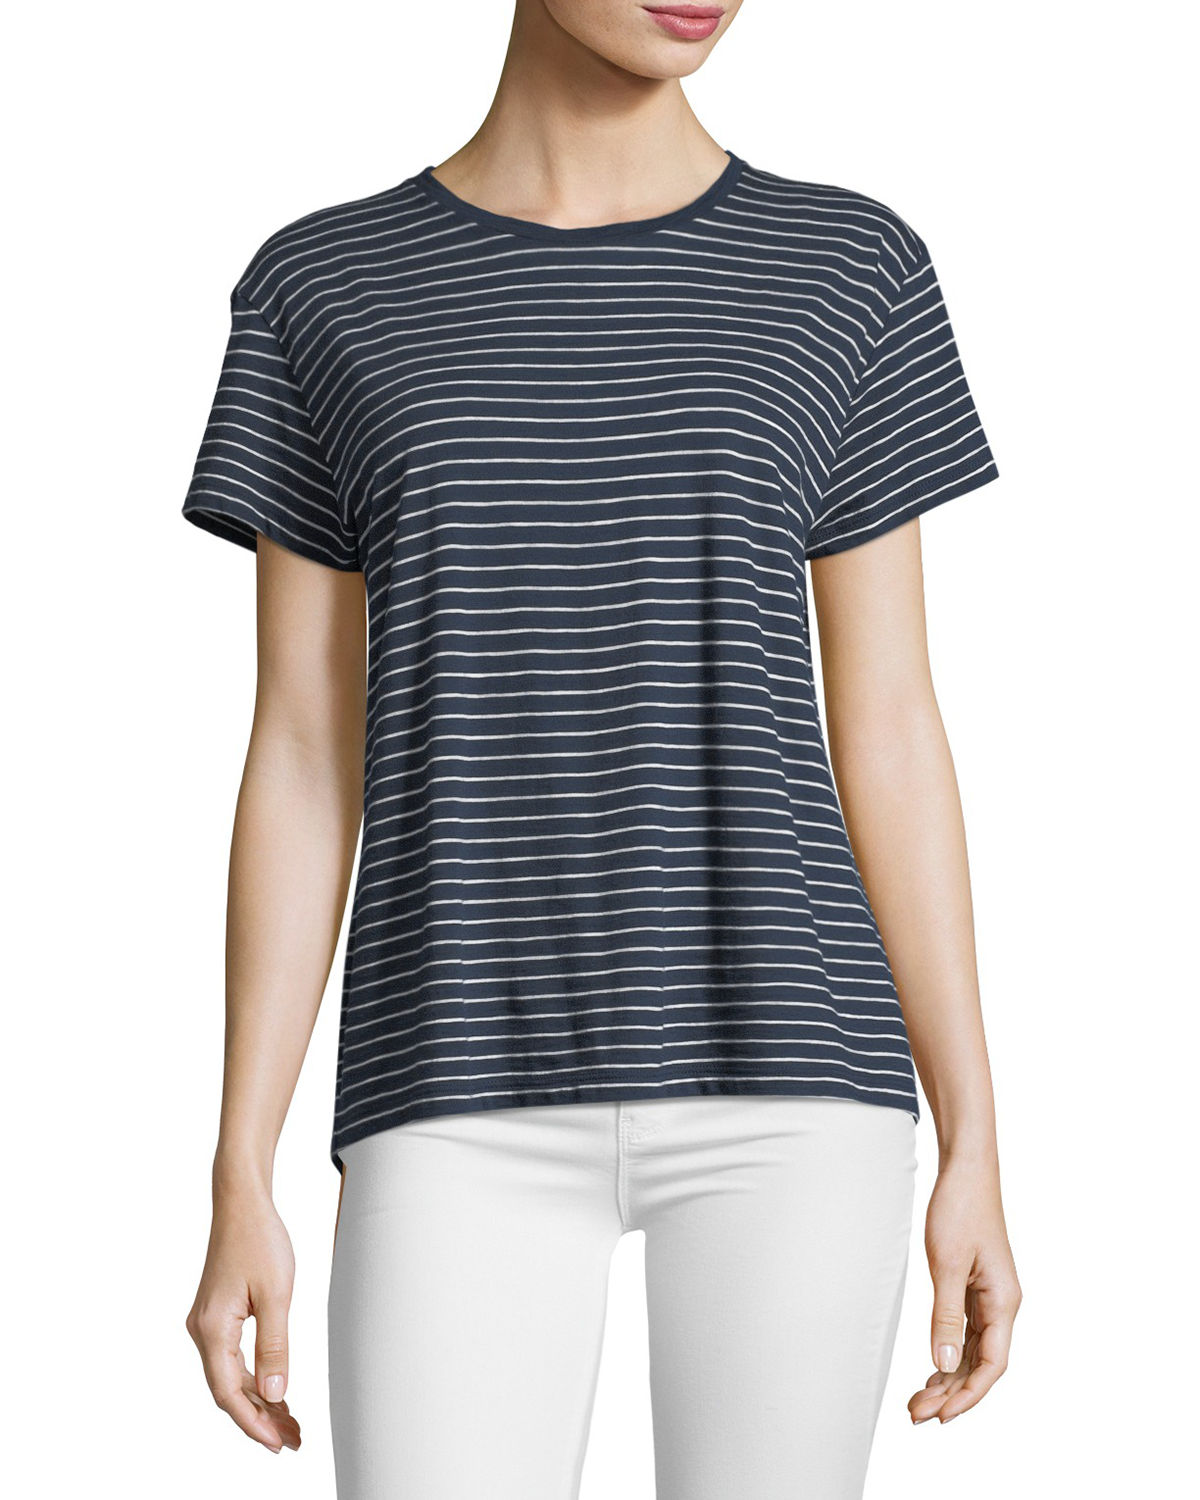 Relaxed Striped Tee